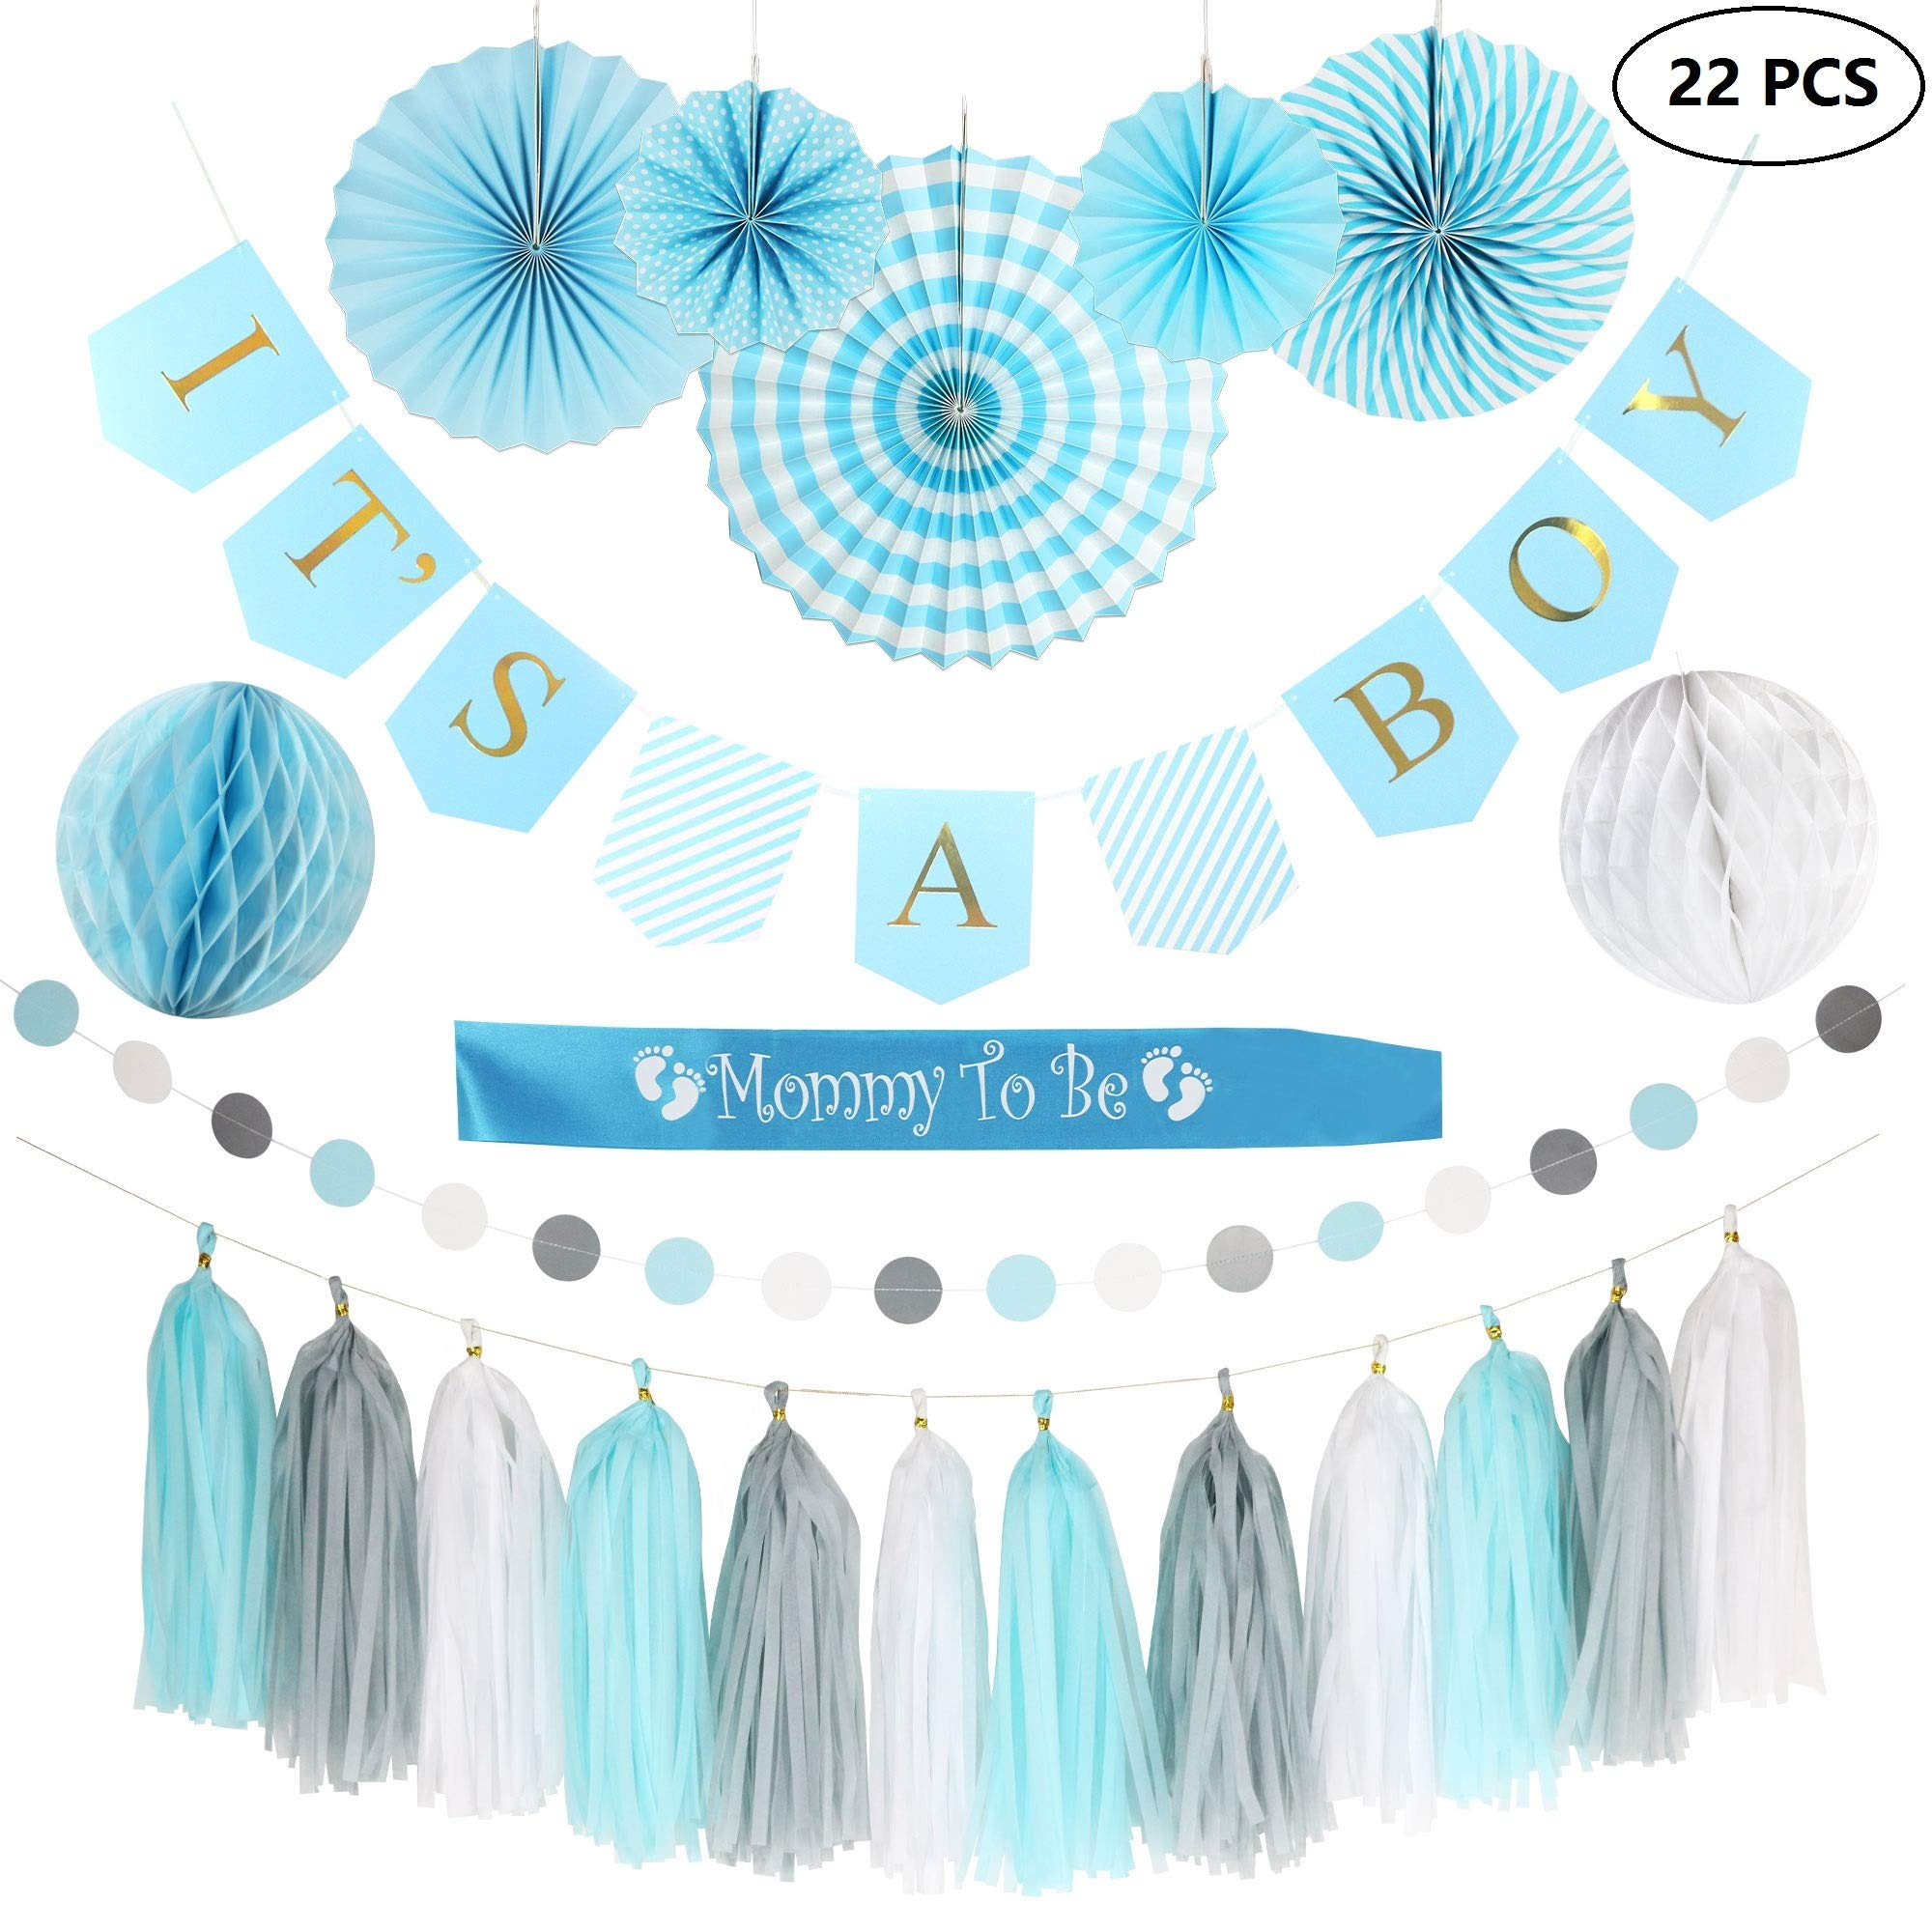 Baby Shower Decorations for BOY!| It's A Boy Gold Foil Banner| Printable Games & Invitations| Mommy to be Sash| Card Stock Paper Fans| Honeycomb Balls| Tassels | Blue White Grey| Easy & Quick